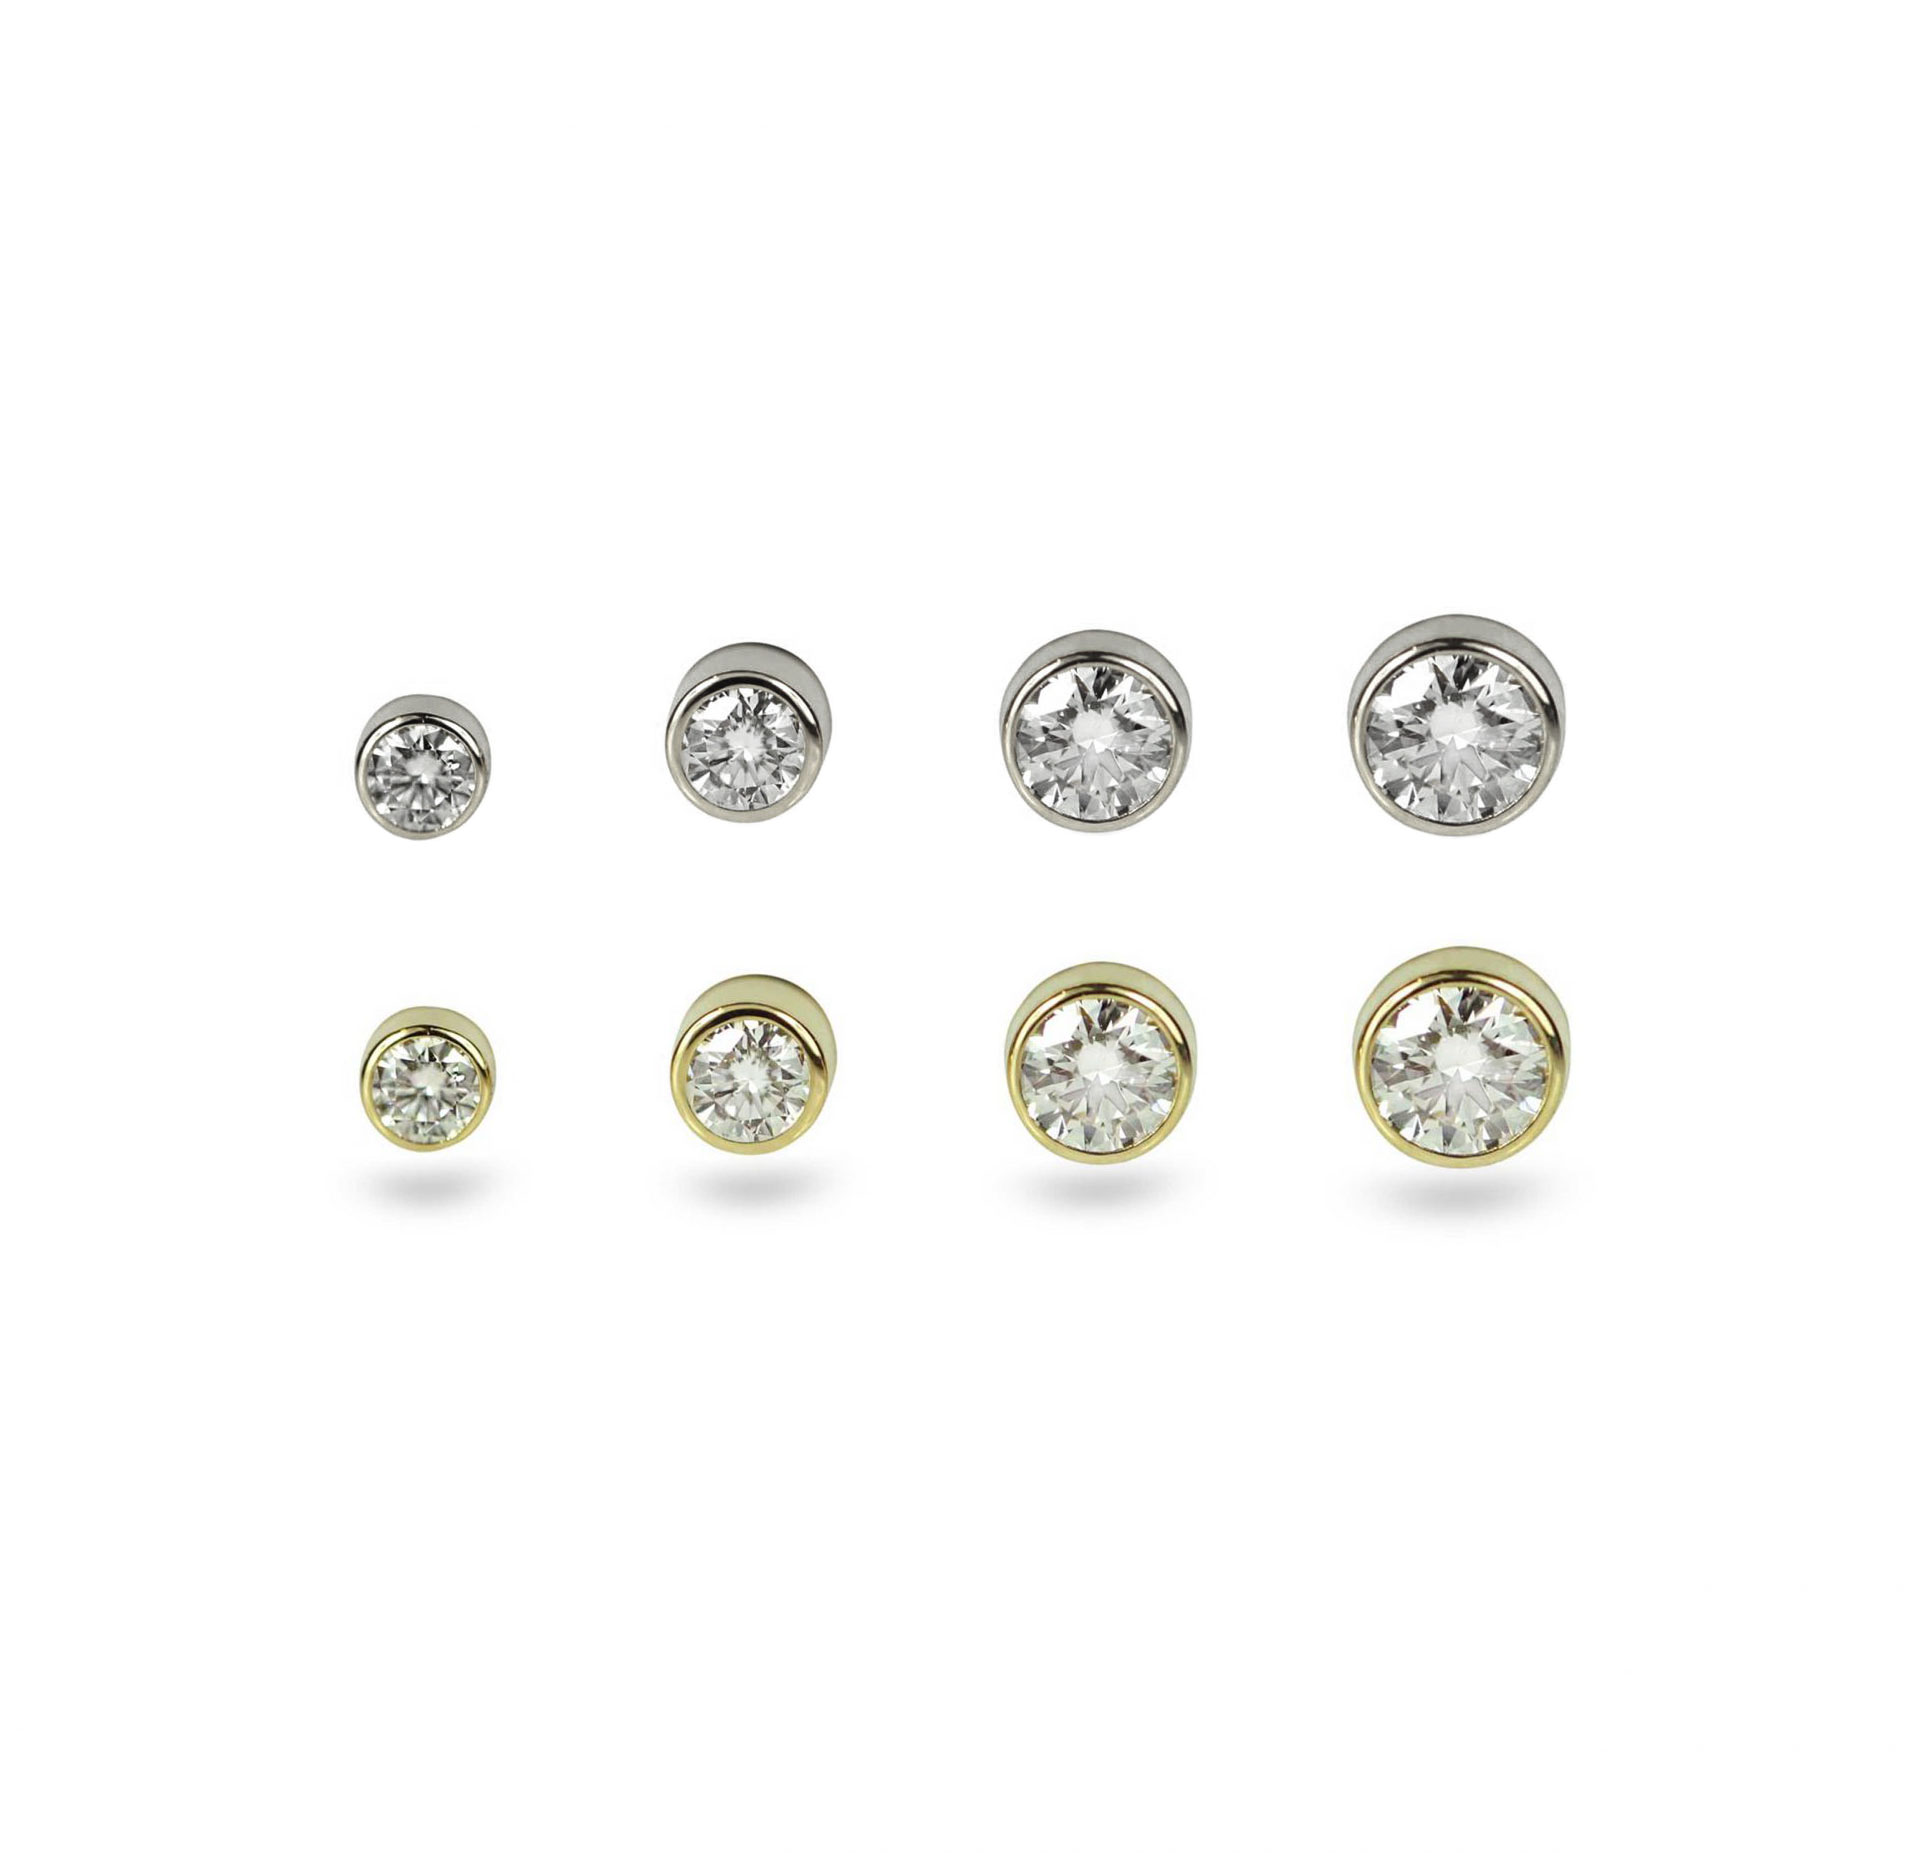 single-diamond-helix-studs-perfect-for-any-part-of-the-ear-cartilage-helix-tragus-lena-cohen-london-piercings